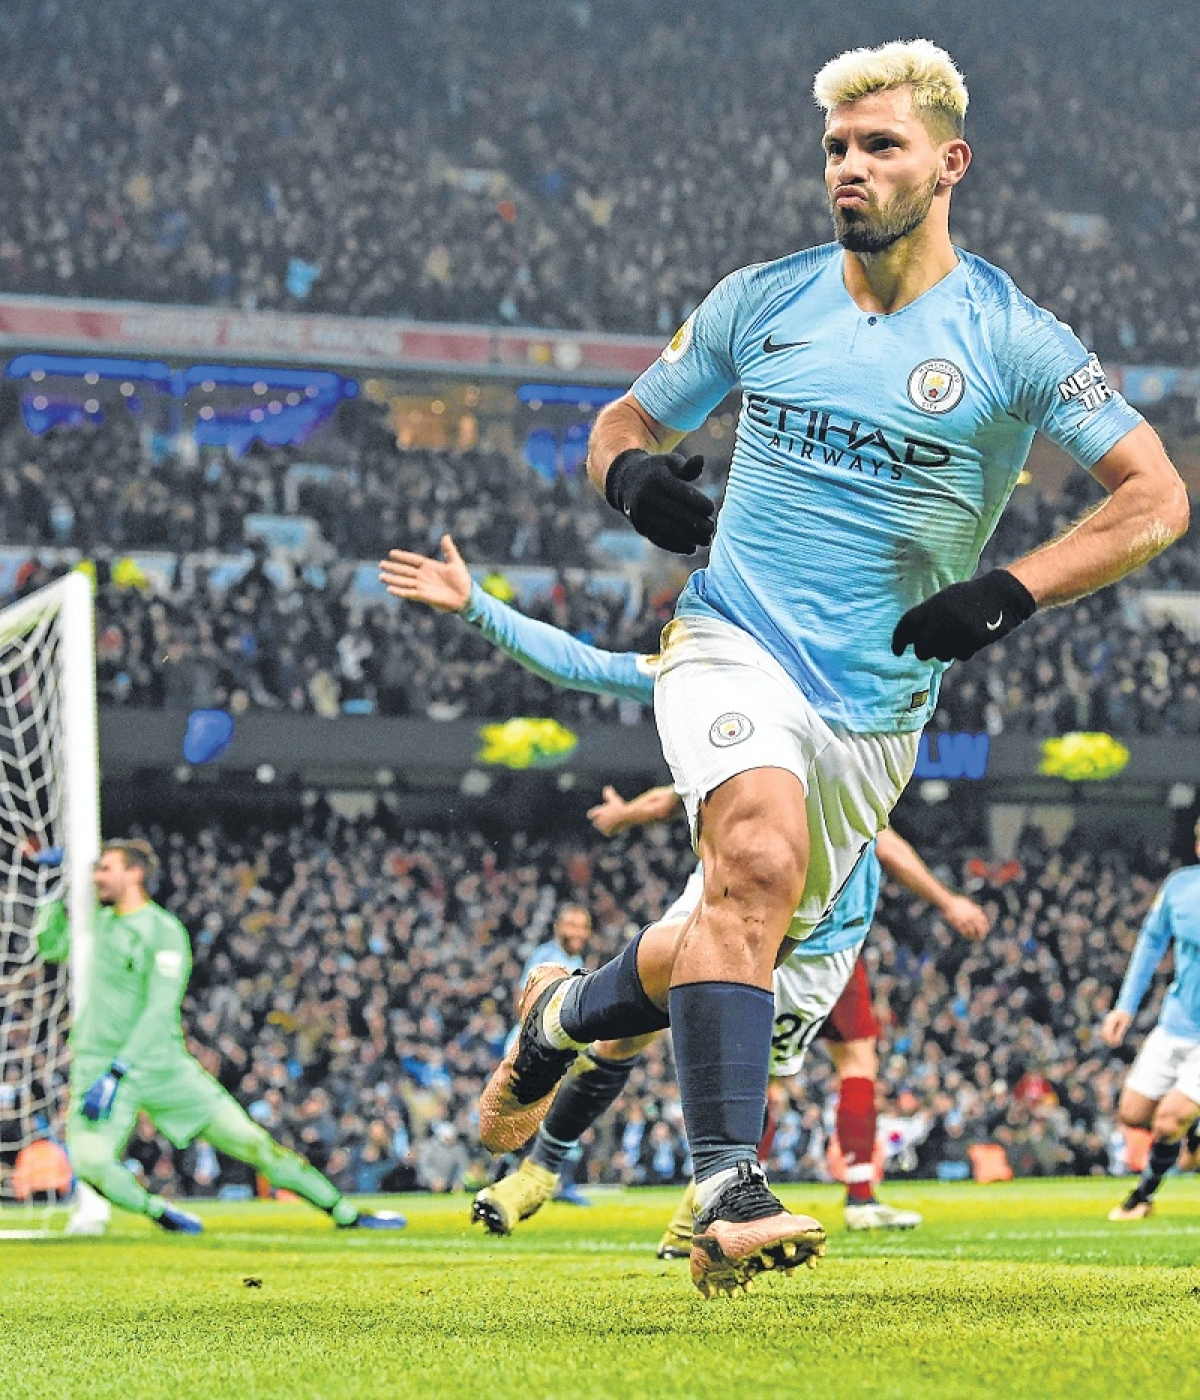 EPL: Man City snap Reds' unbeaten run